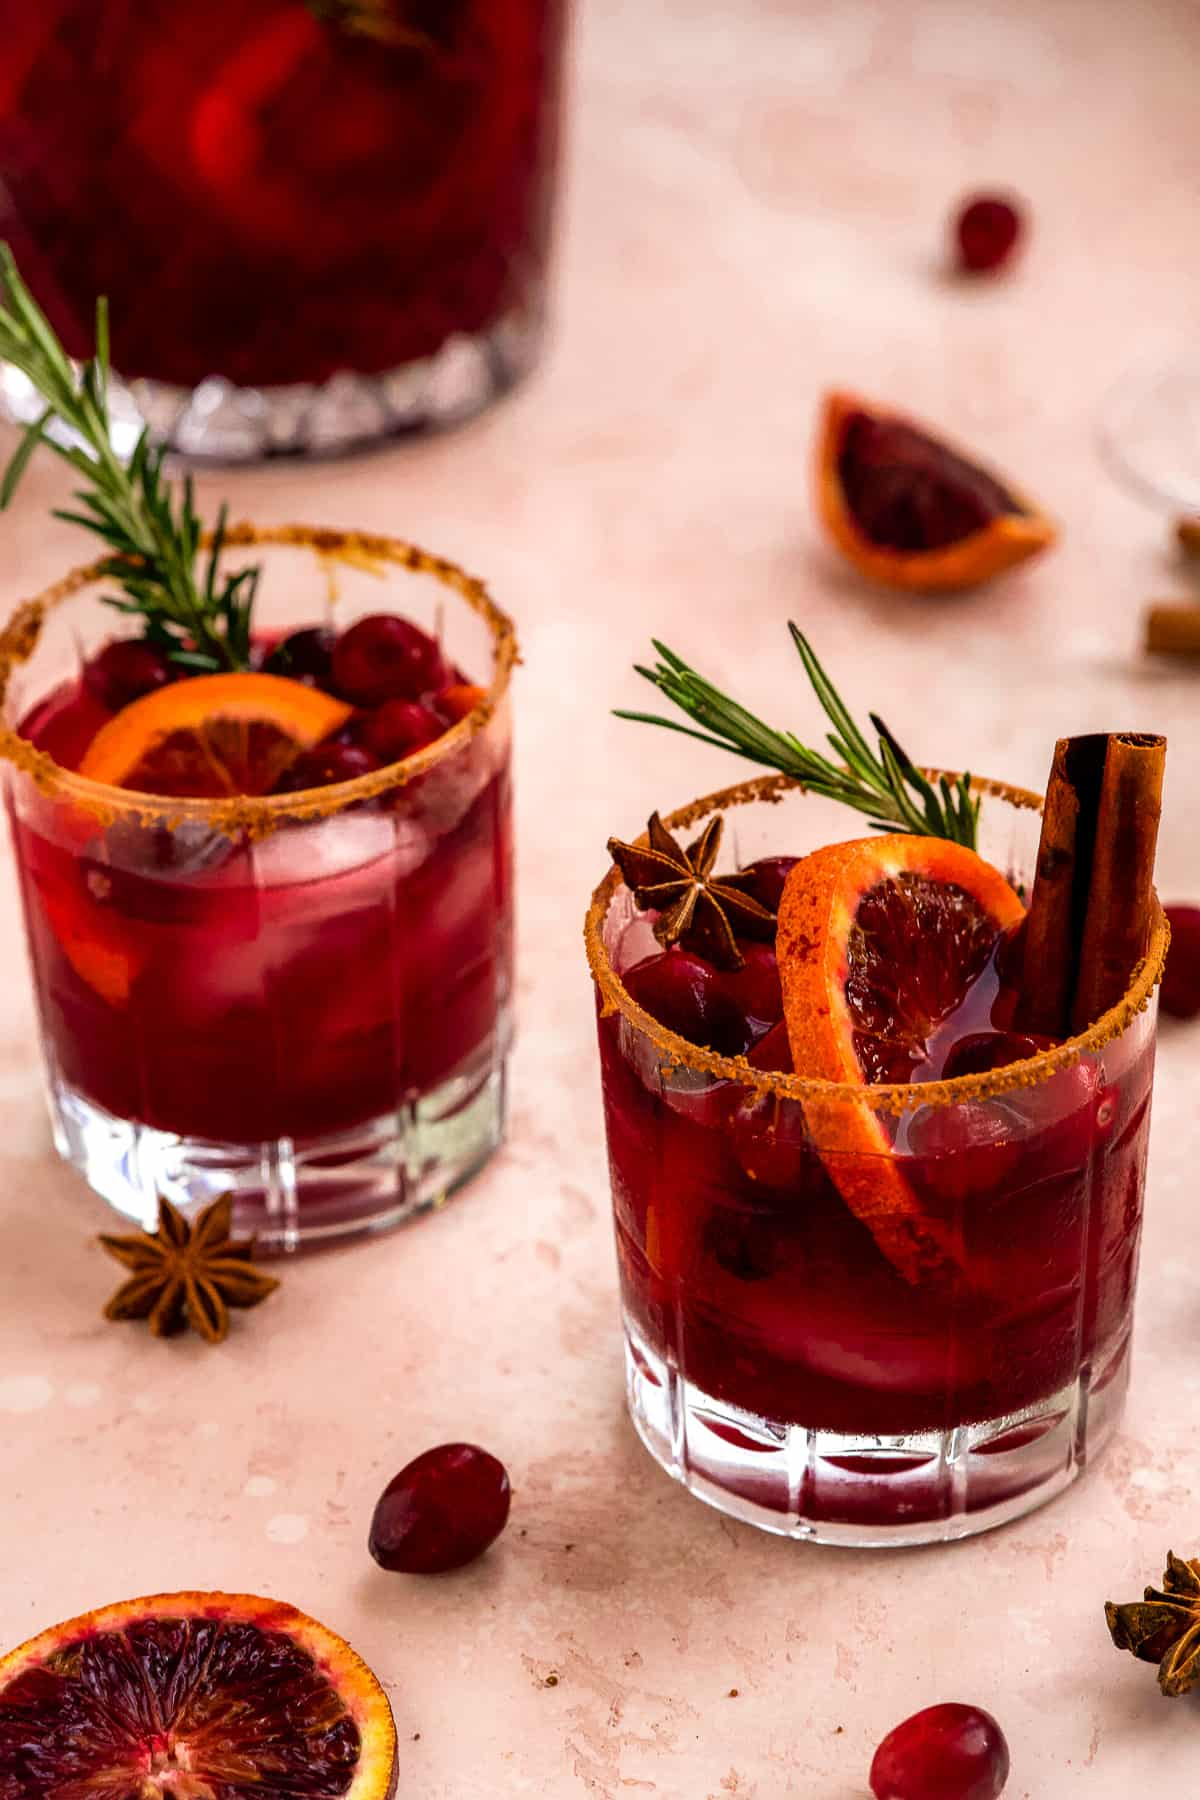 Two crystal cocktail glasses with Blood Orange Cranberry Sangria ready to be enjoyed.  Cranberries are sprinkled around the base of the glasses.